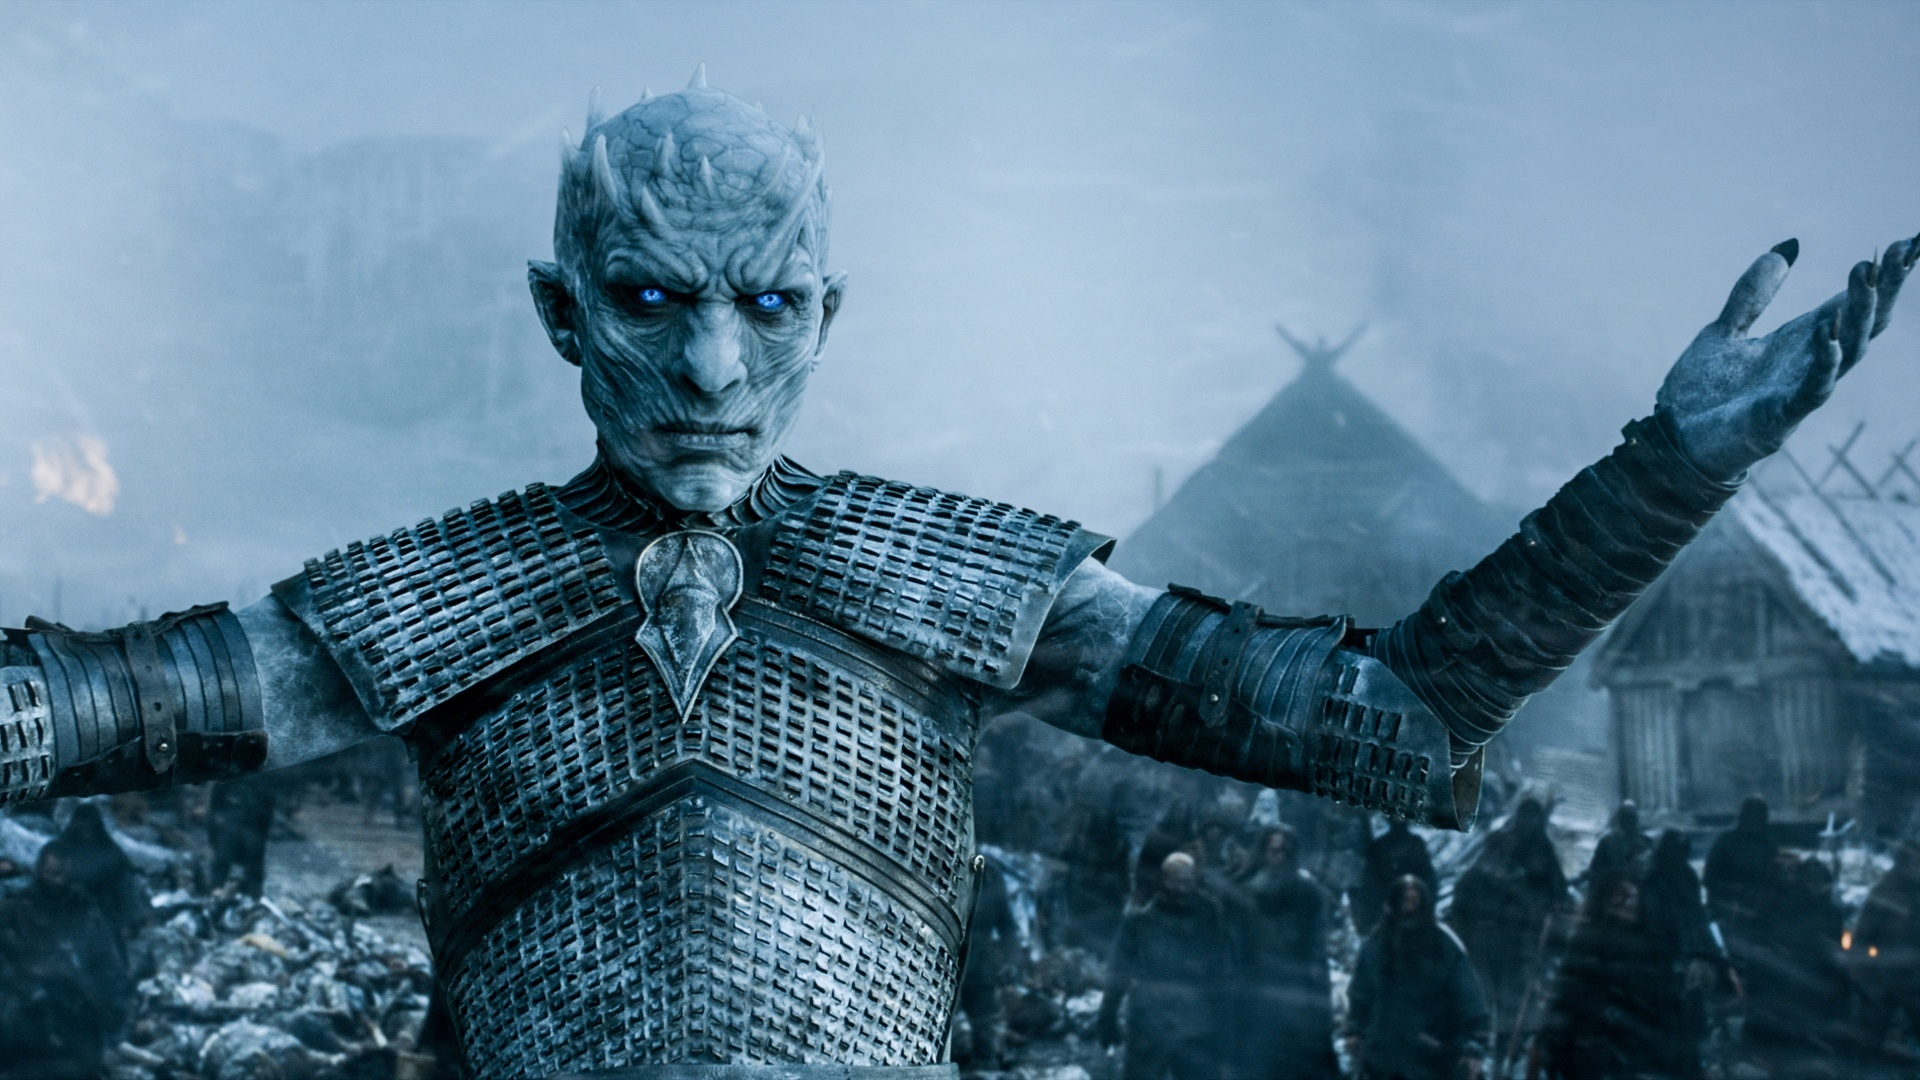 game of thrones 508 hardhome images 2015 1920×1080-002